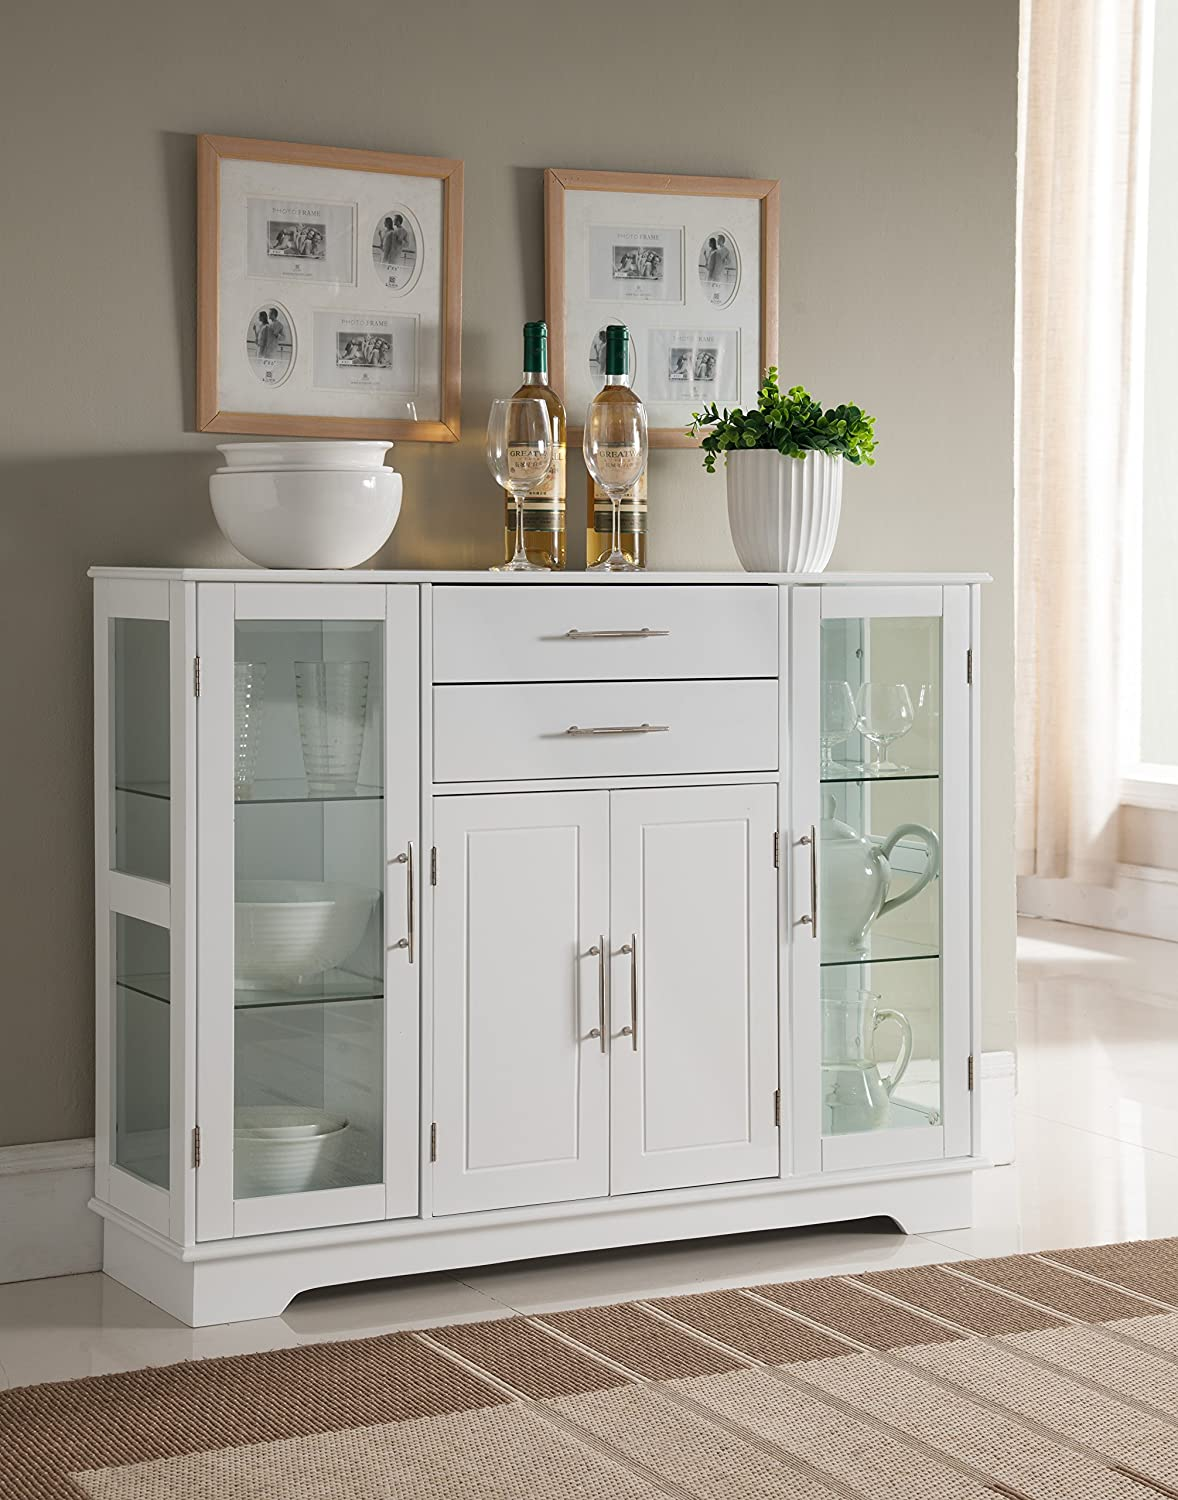 fashion vera amazon dining with home drawers elegant dp kitchen storage white door cabinet com floor